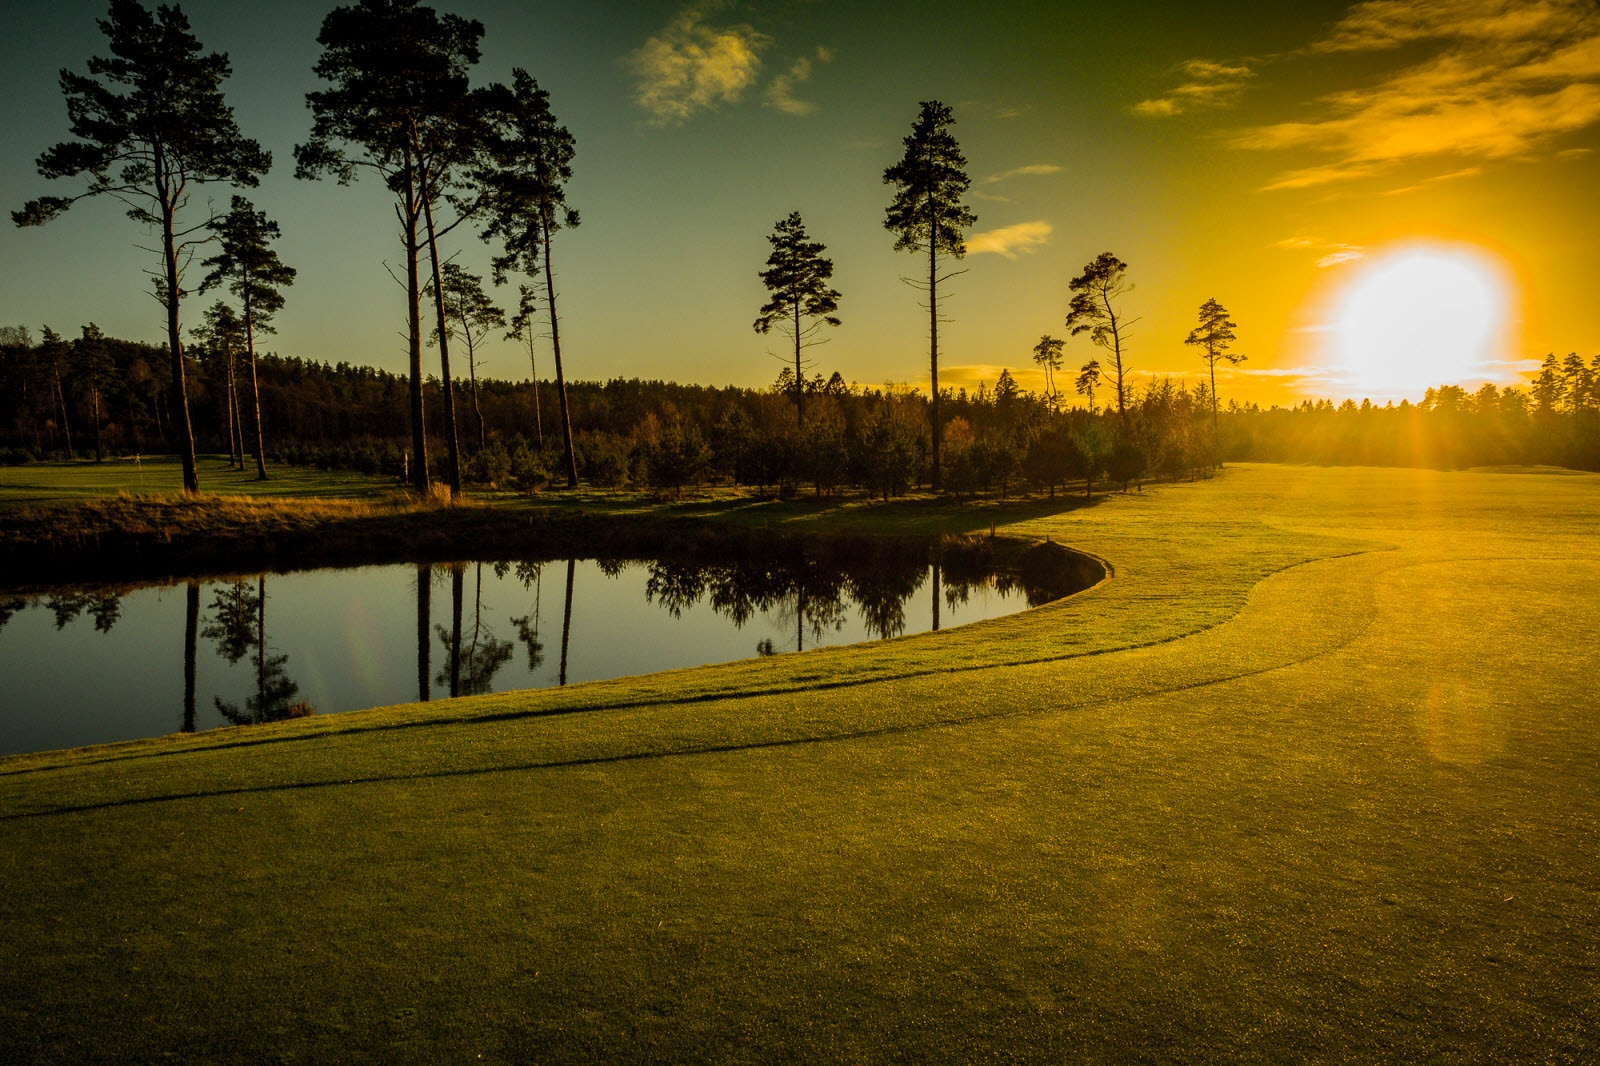 Golf course in Silkeborg